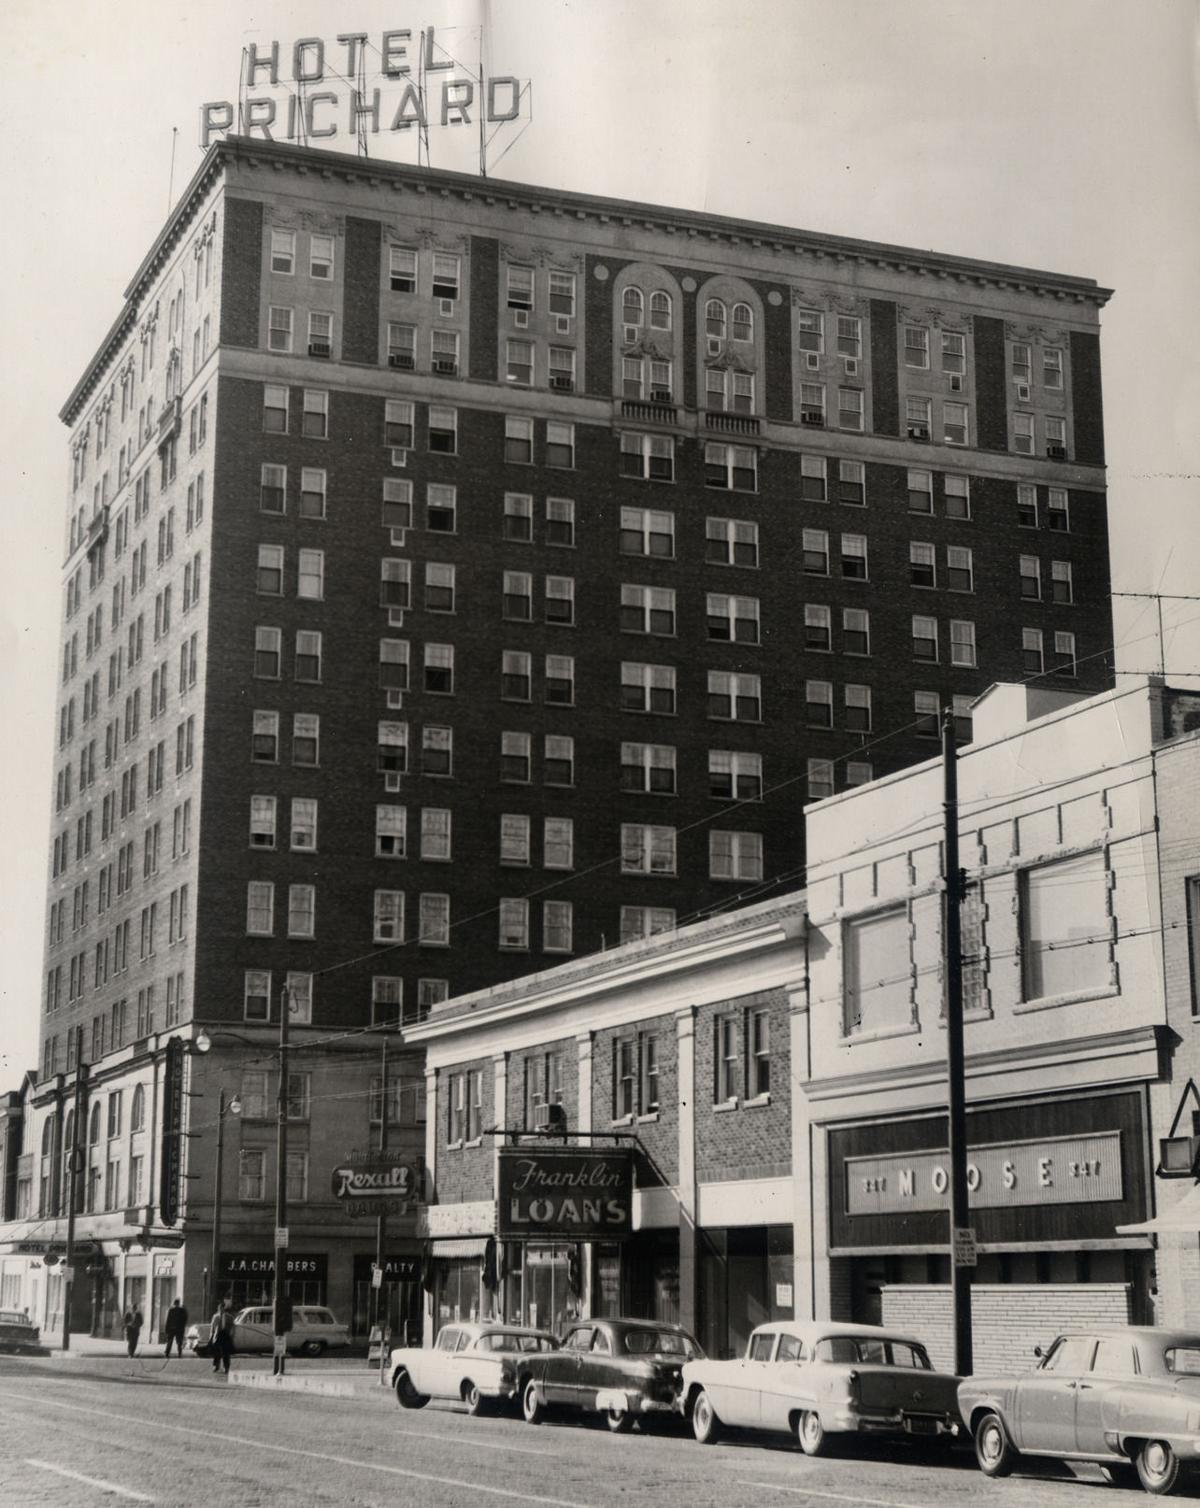 Prichard Hotel Owner Aims To Re Former Glory Of Building